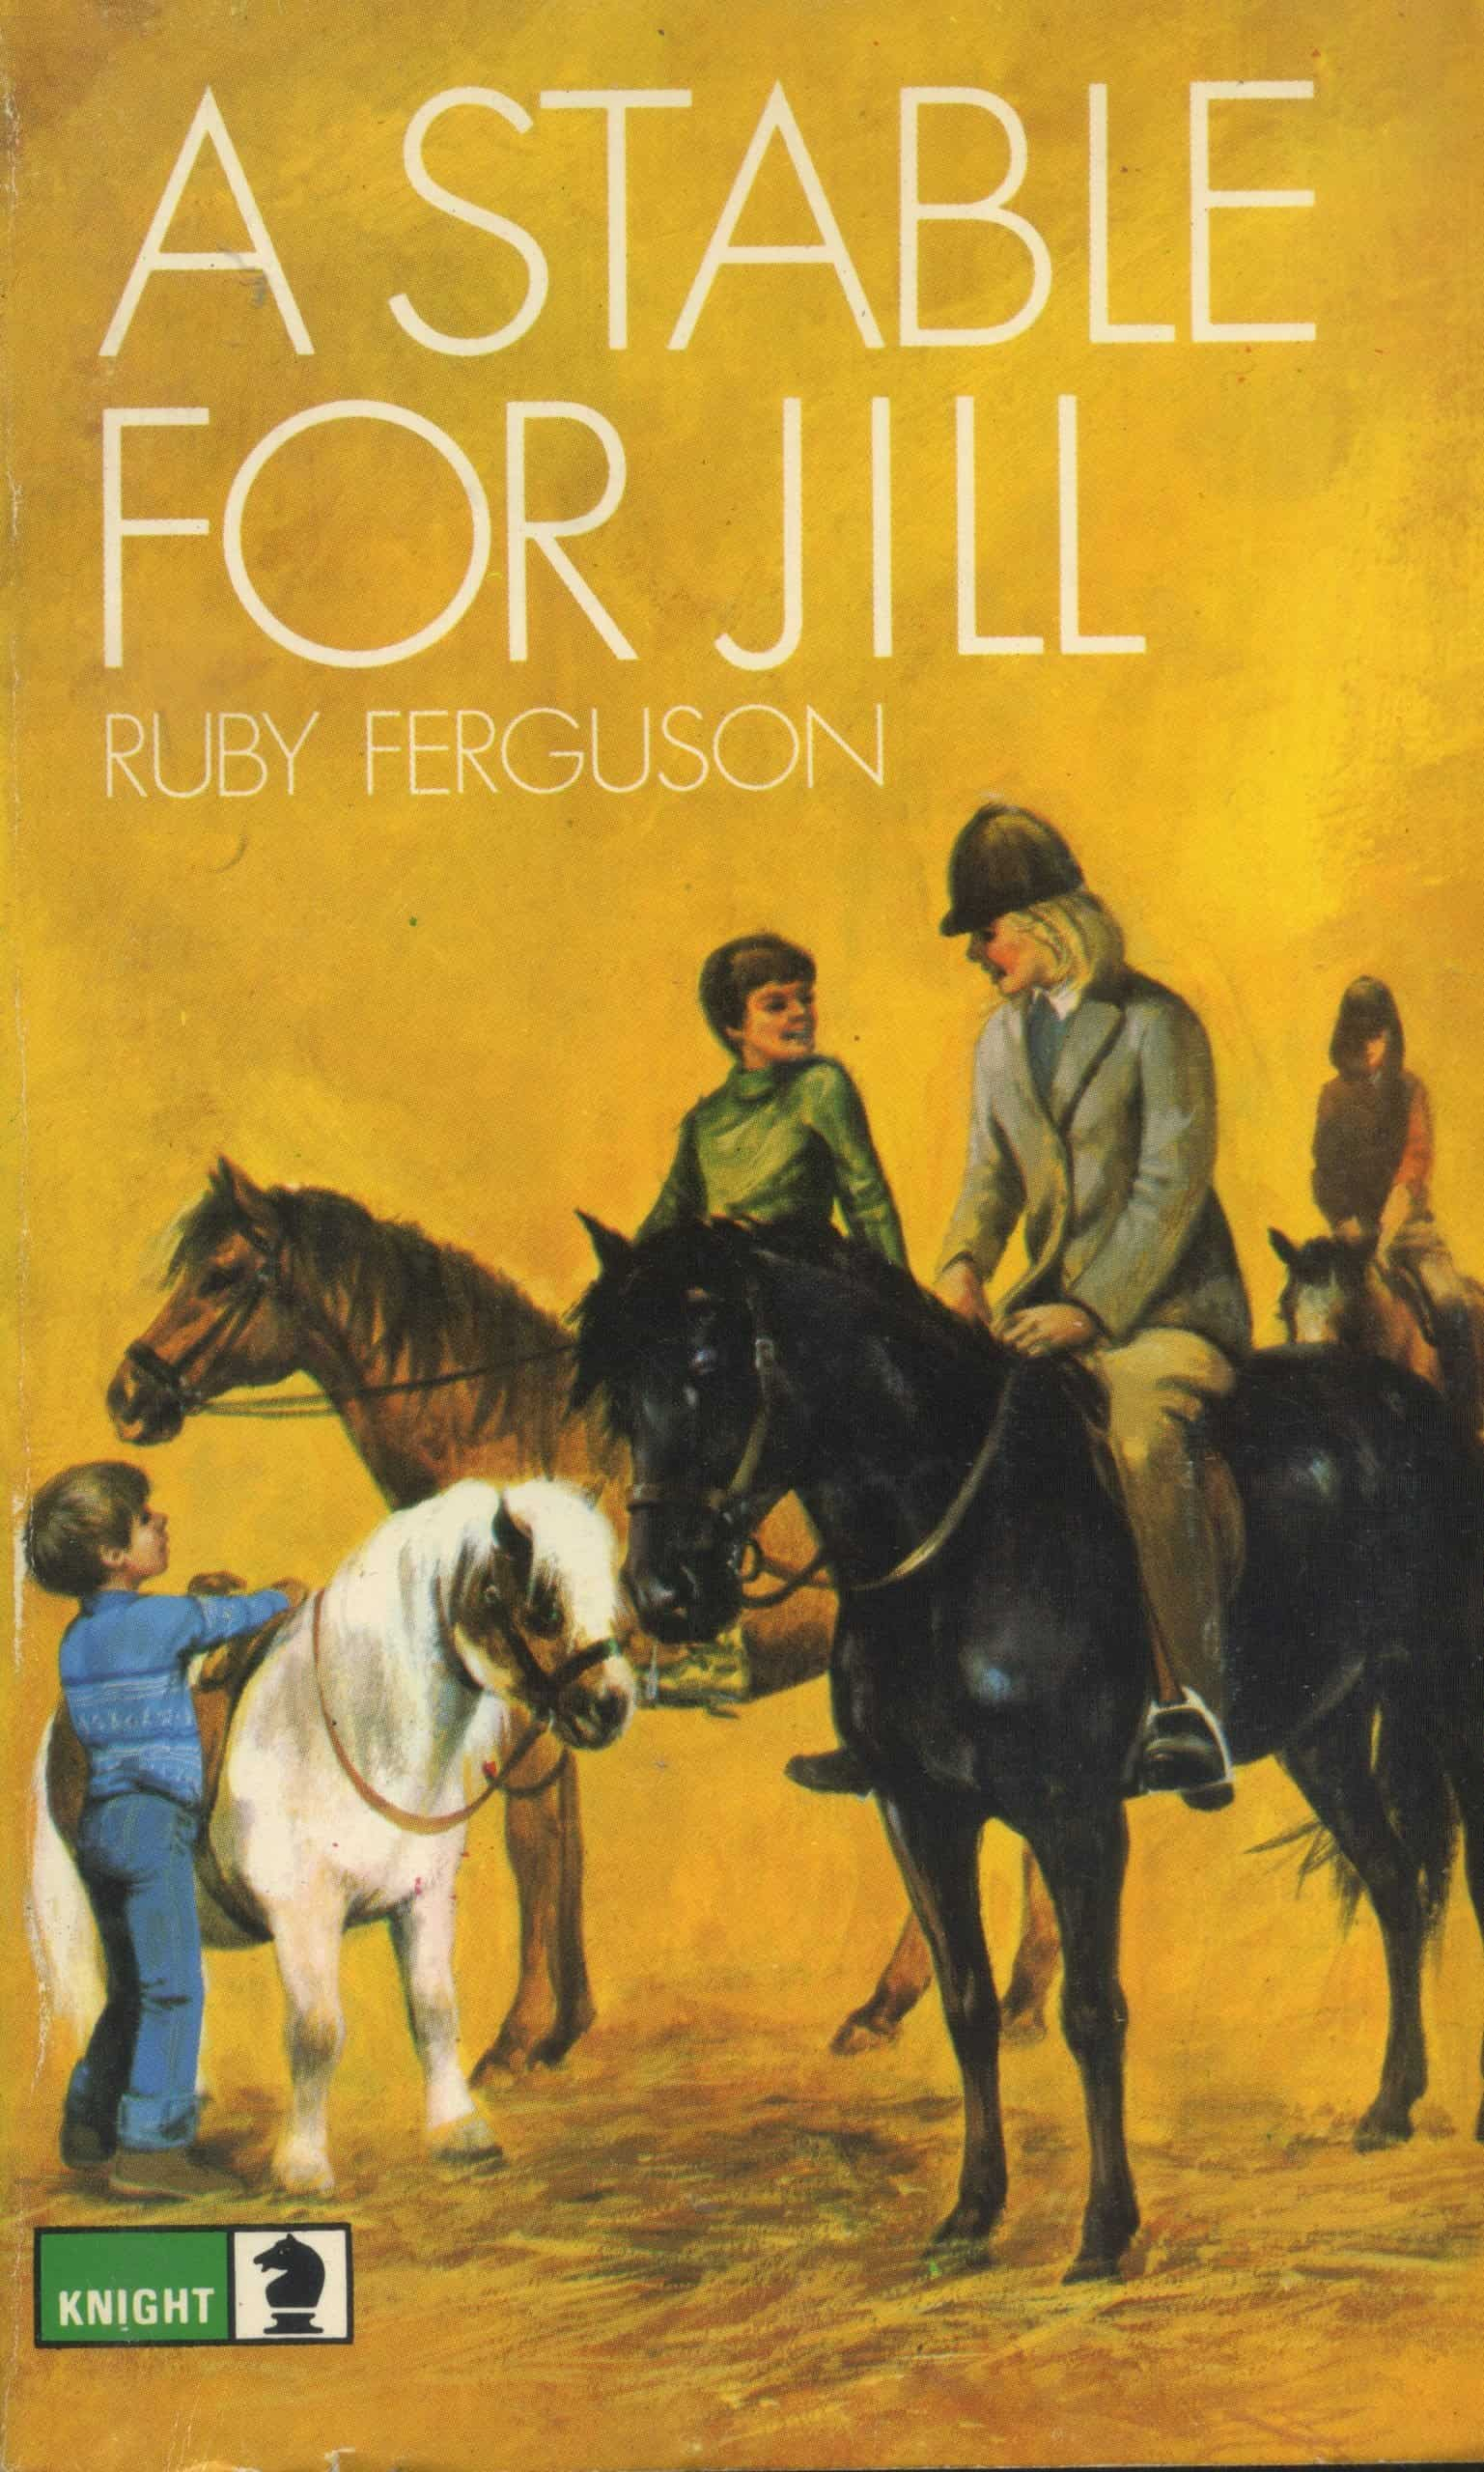 A Stable for Jill Book Ruby Ferguson